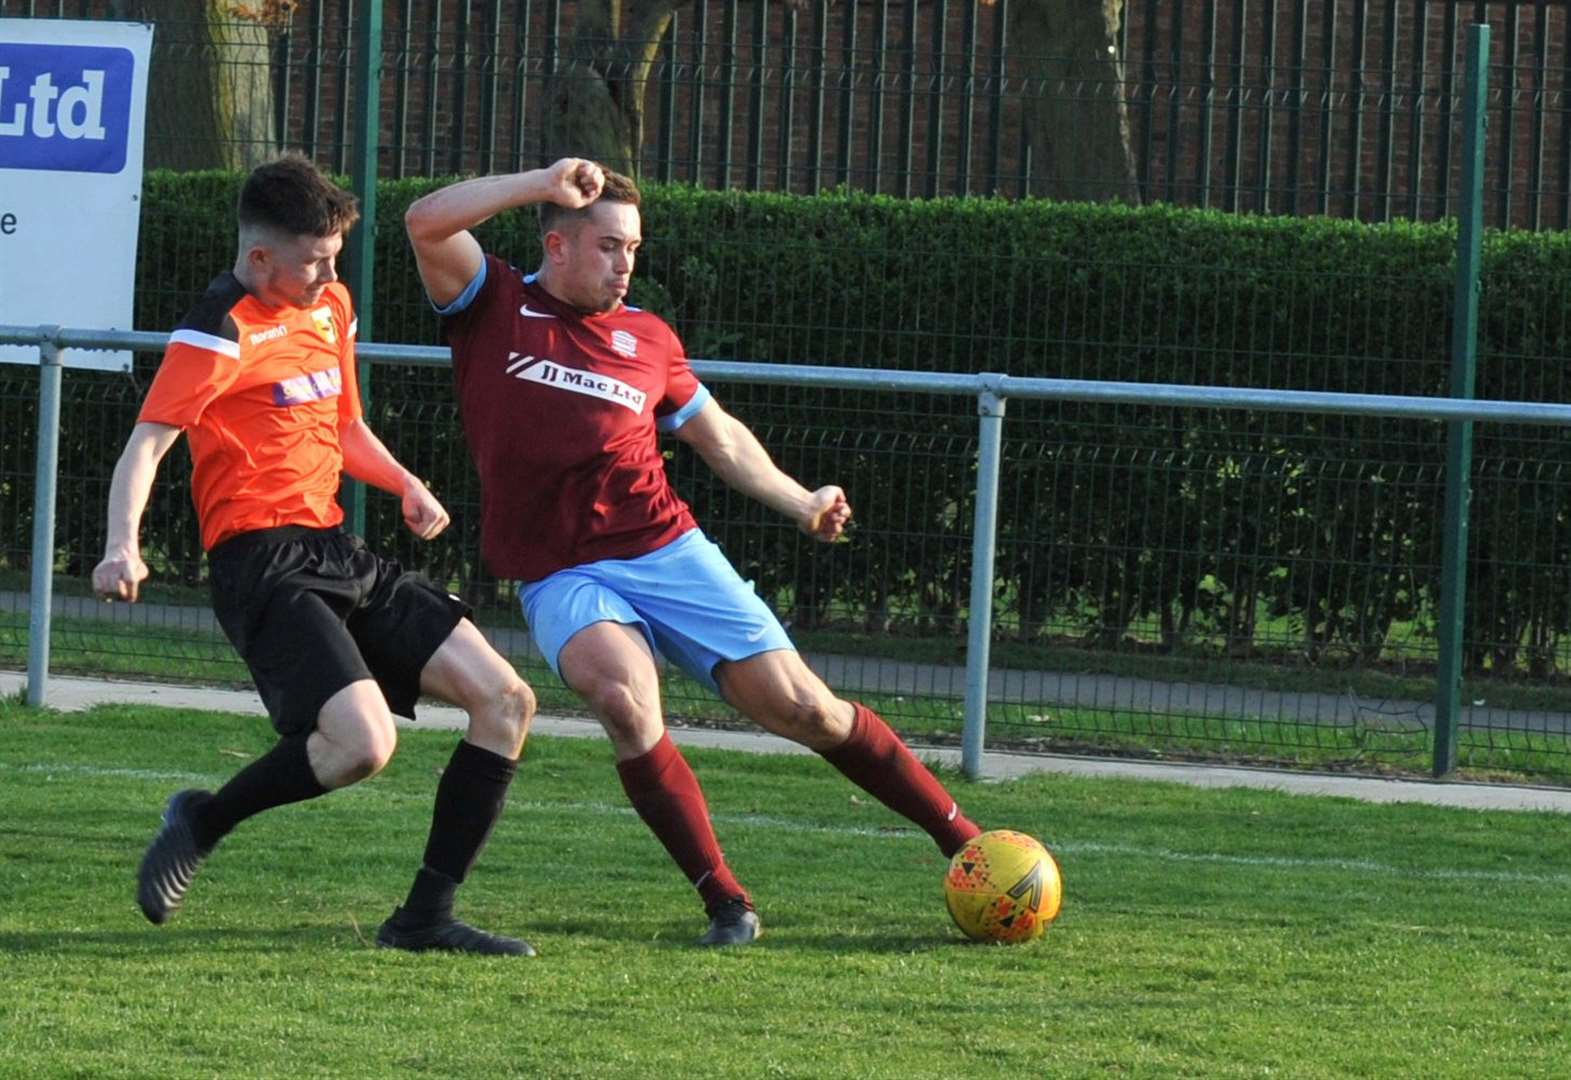 FOOTBALL: Chance for Wakes to test their progress in home clash with league leaders